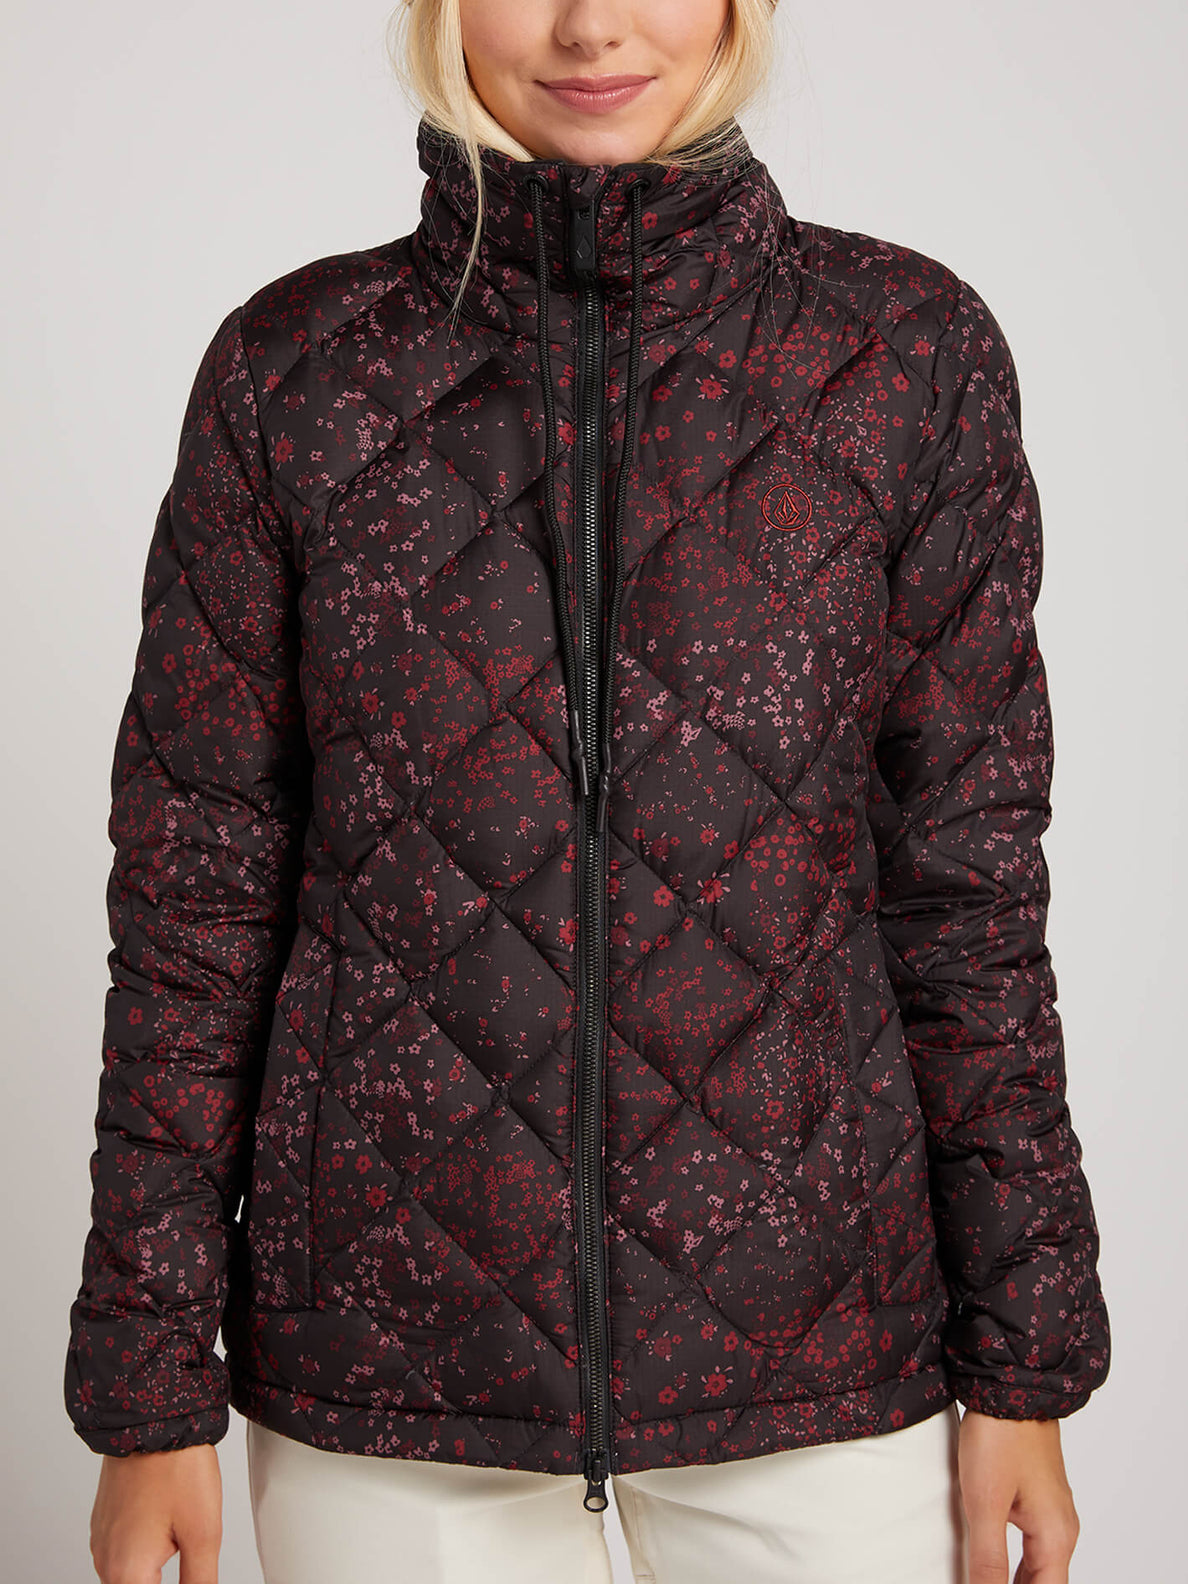 Skies Down Puff Jacket In Black Floral Print, Alternate View